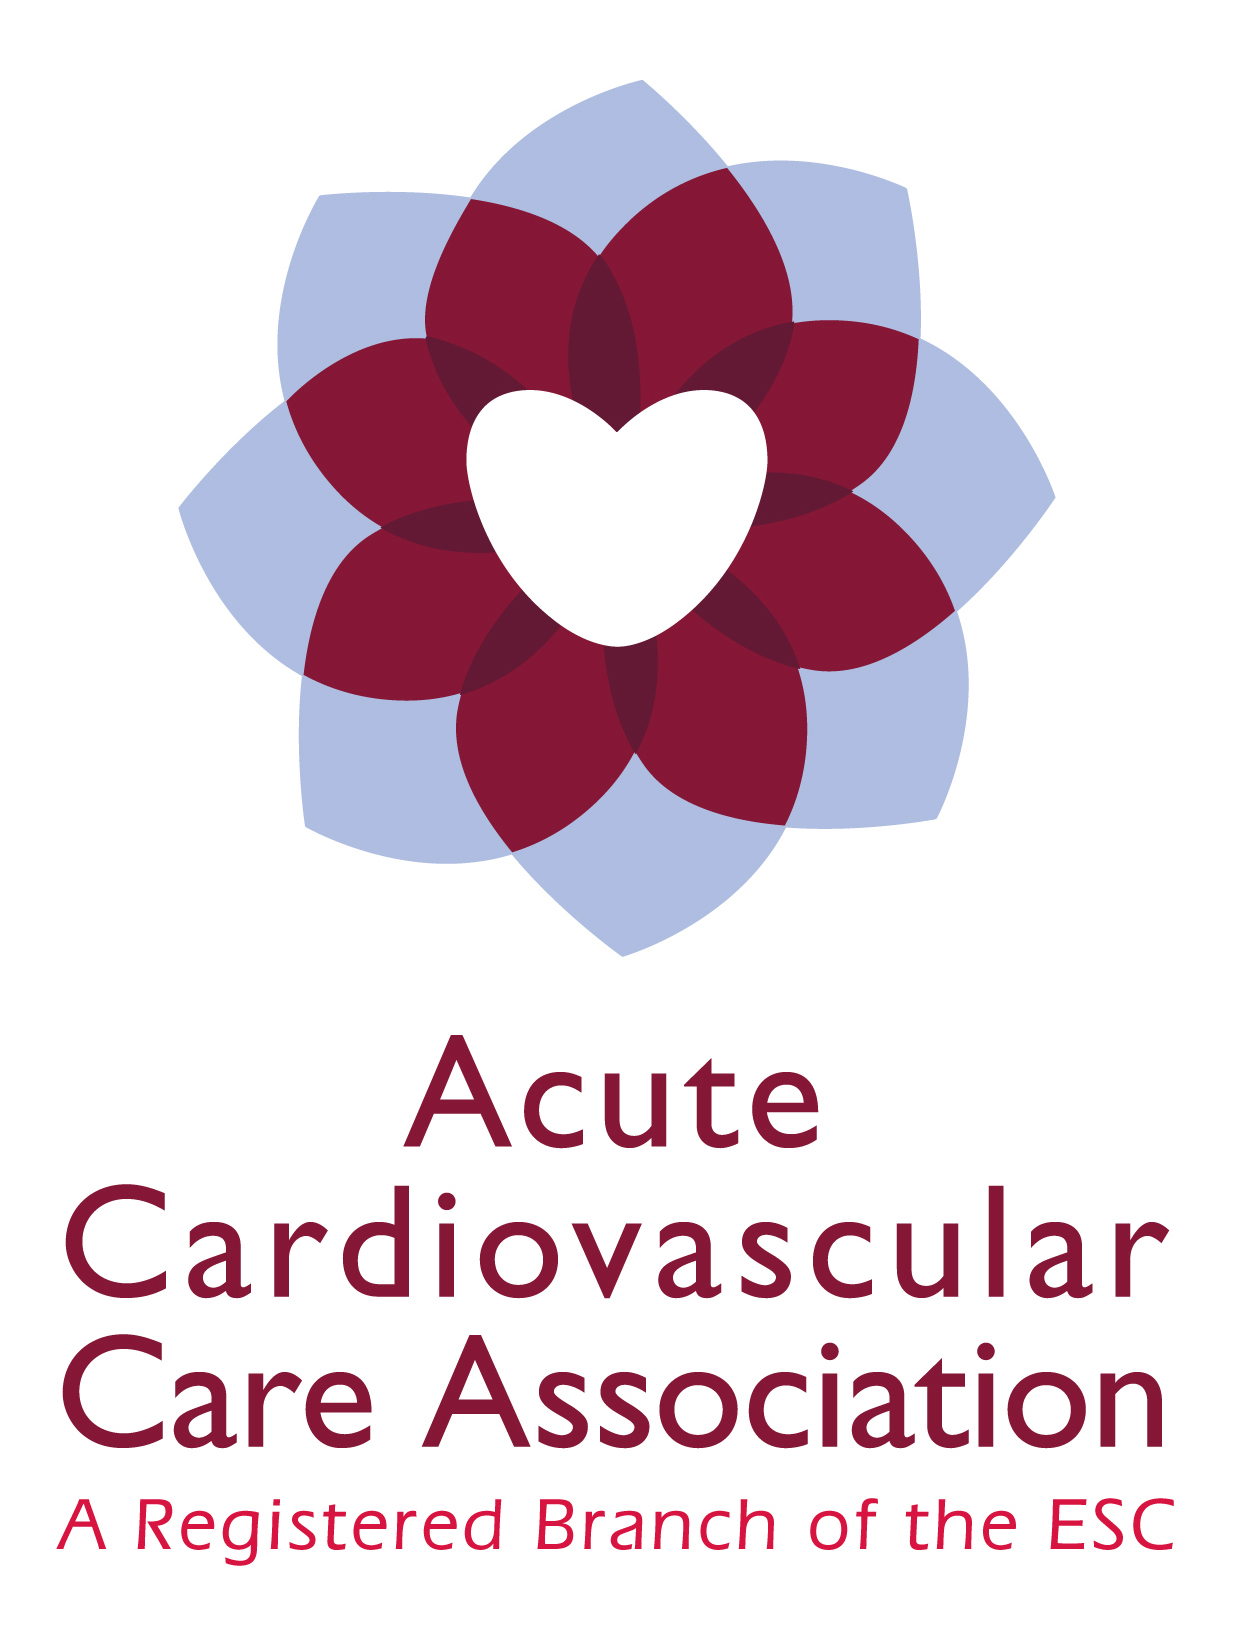 ACCA 2020 - European Society of Cardiology Acute Cardiovascular Care Congress